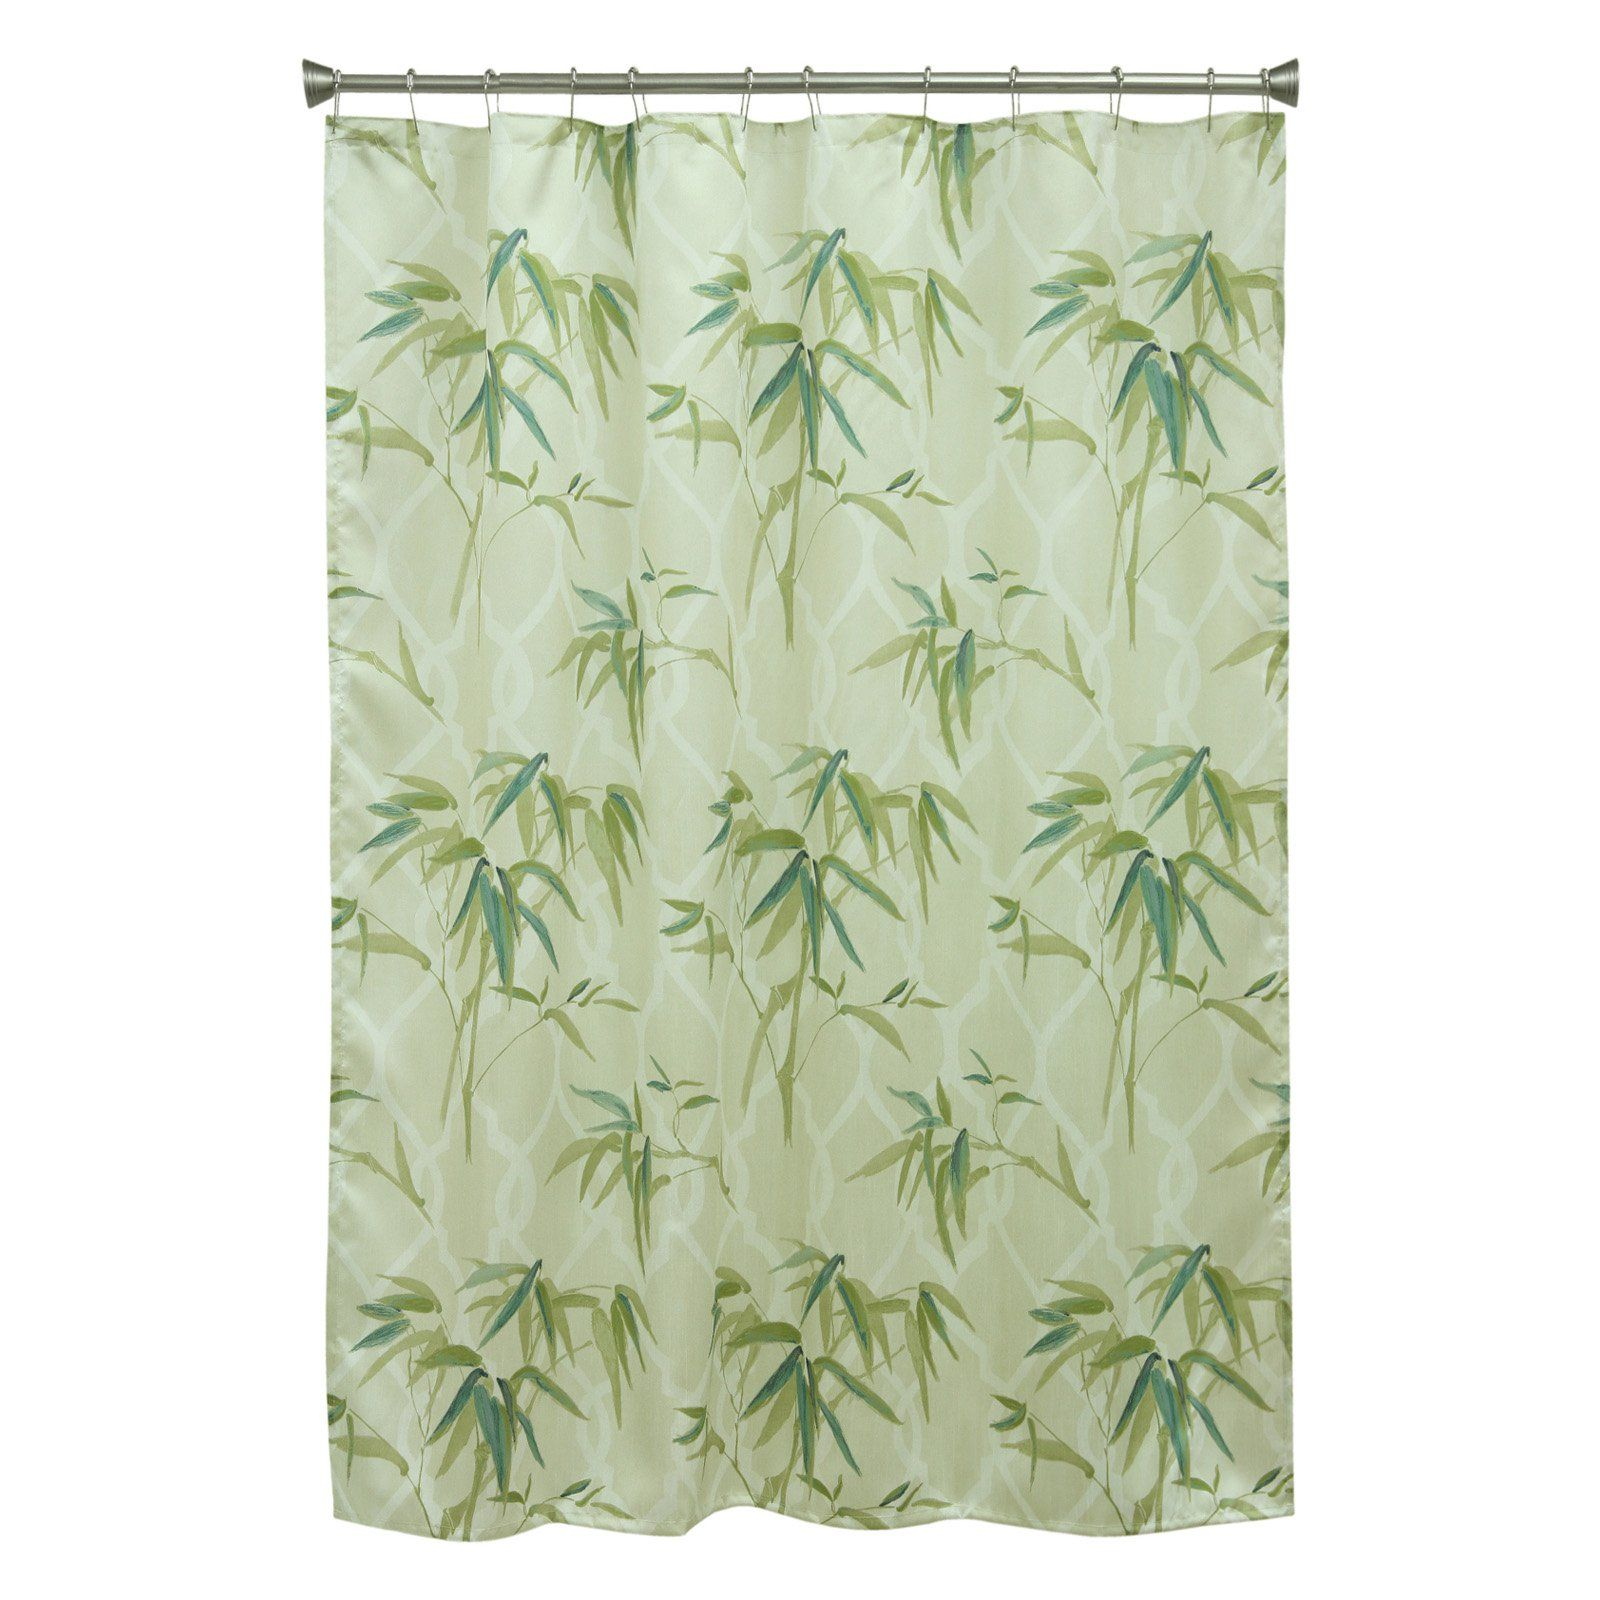 Bacova Zen Bamboo Shower Curtain Curtains Patterned Shower Curtain